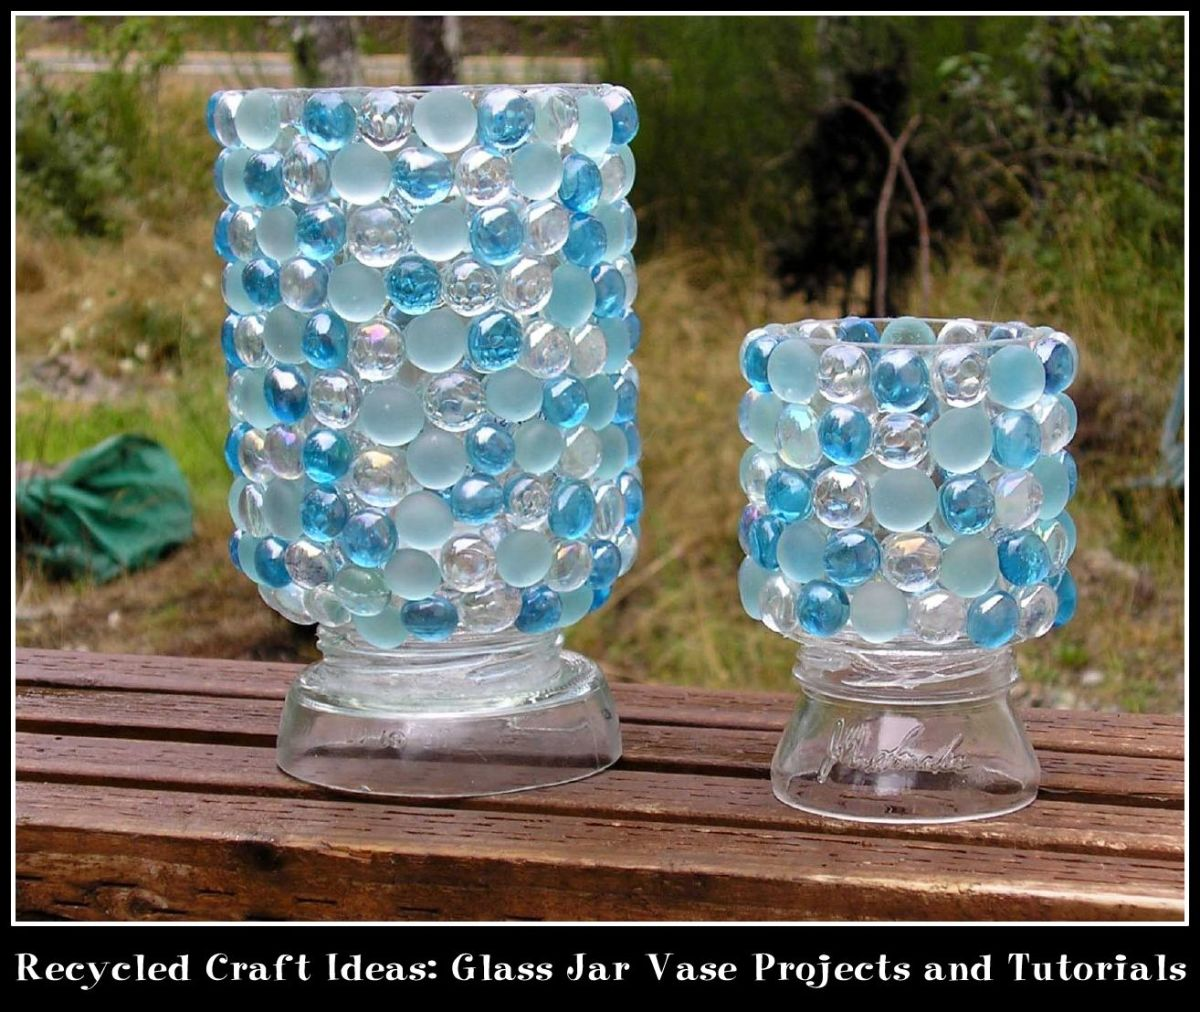 Recycled Craft Ideas: Glass Jar Vase Projects and Tutorials